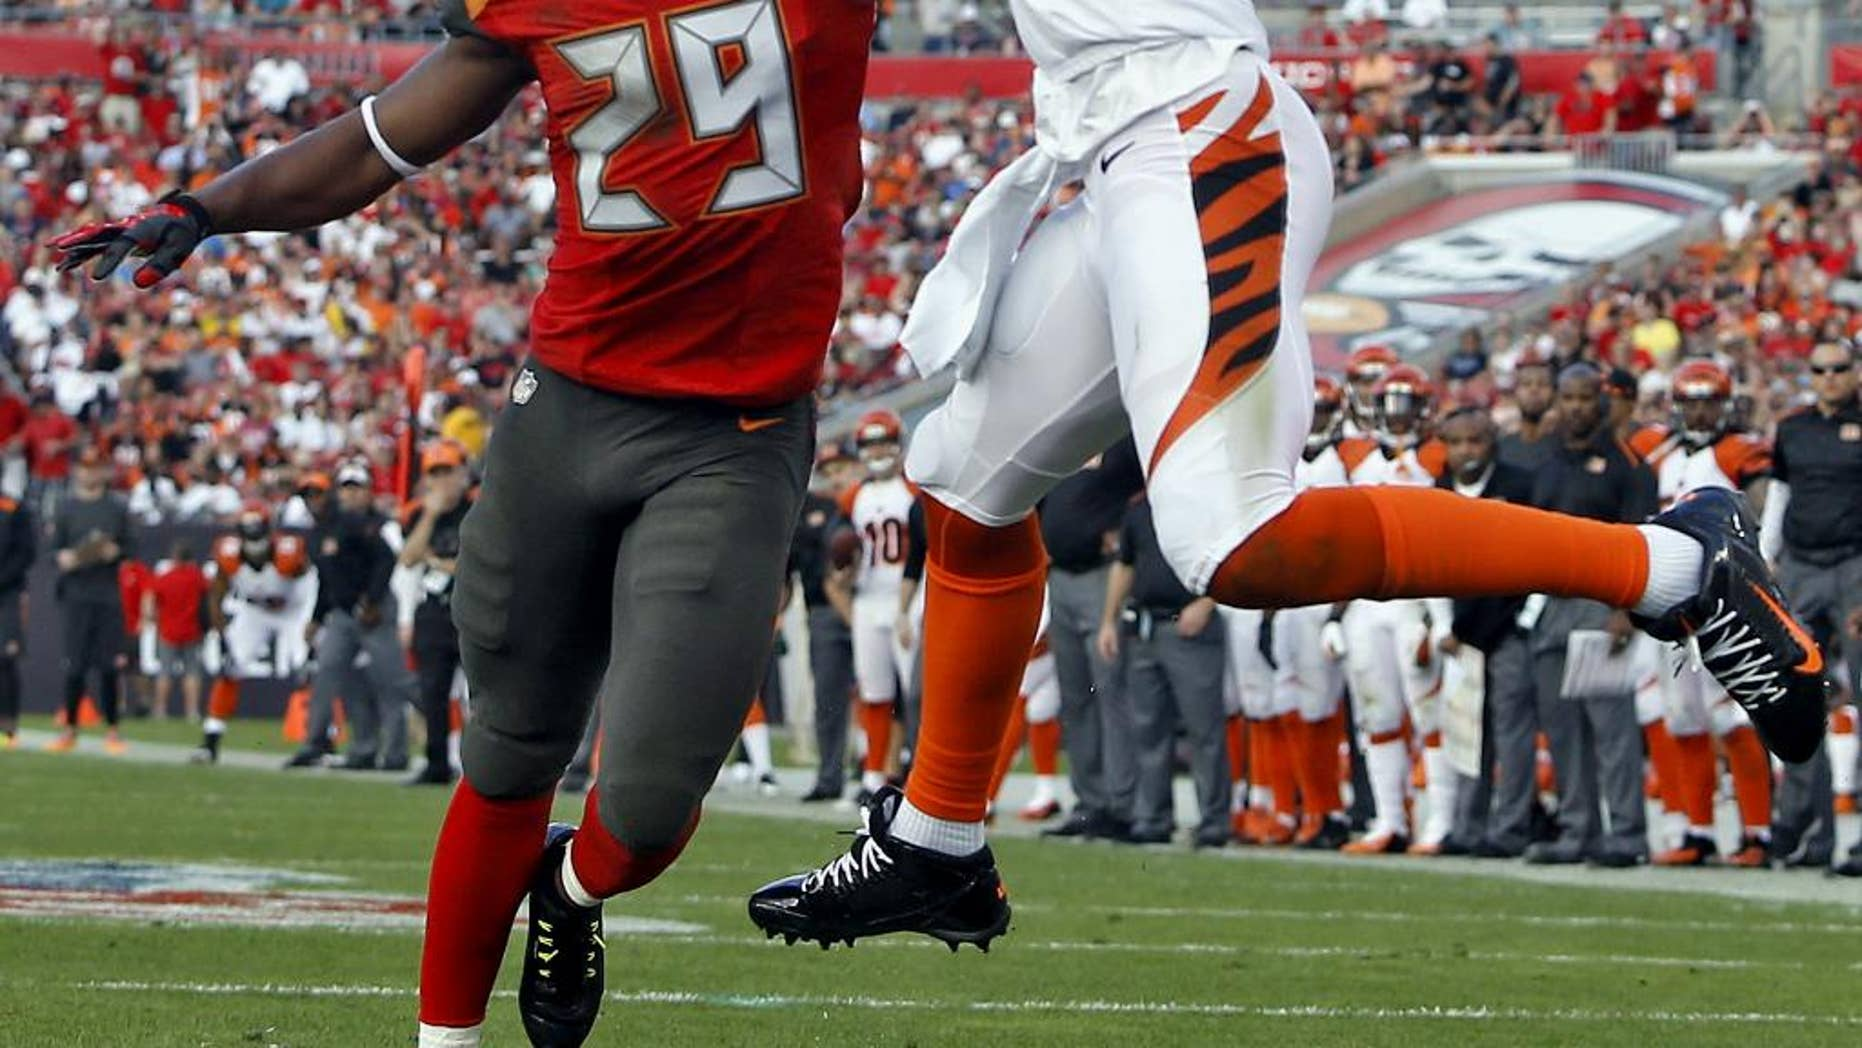 Cincinnati Bengals wide receiver A.J. Green (18) pulls in a 13-yard touchdown reception in front of Tampa Bay Buccaneers cornerback Leonard Johnson (29) during the third quarter of an NFL football game Sunday, Nov. 30, 2014, in Tampa, Fla. (AP Photo/Brian Blanco)